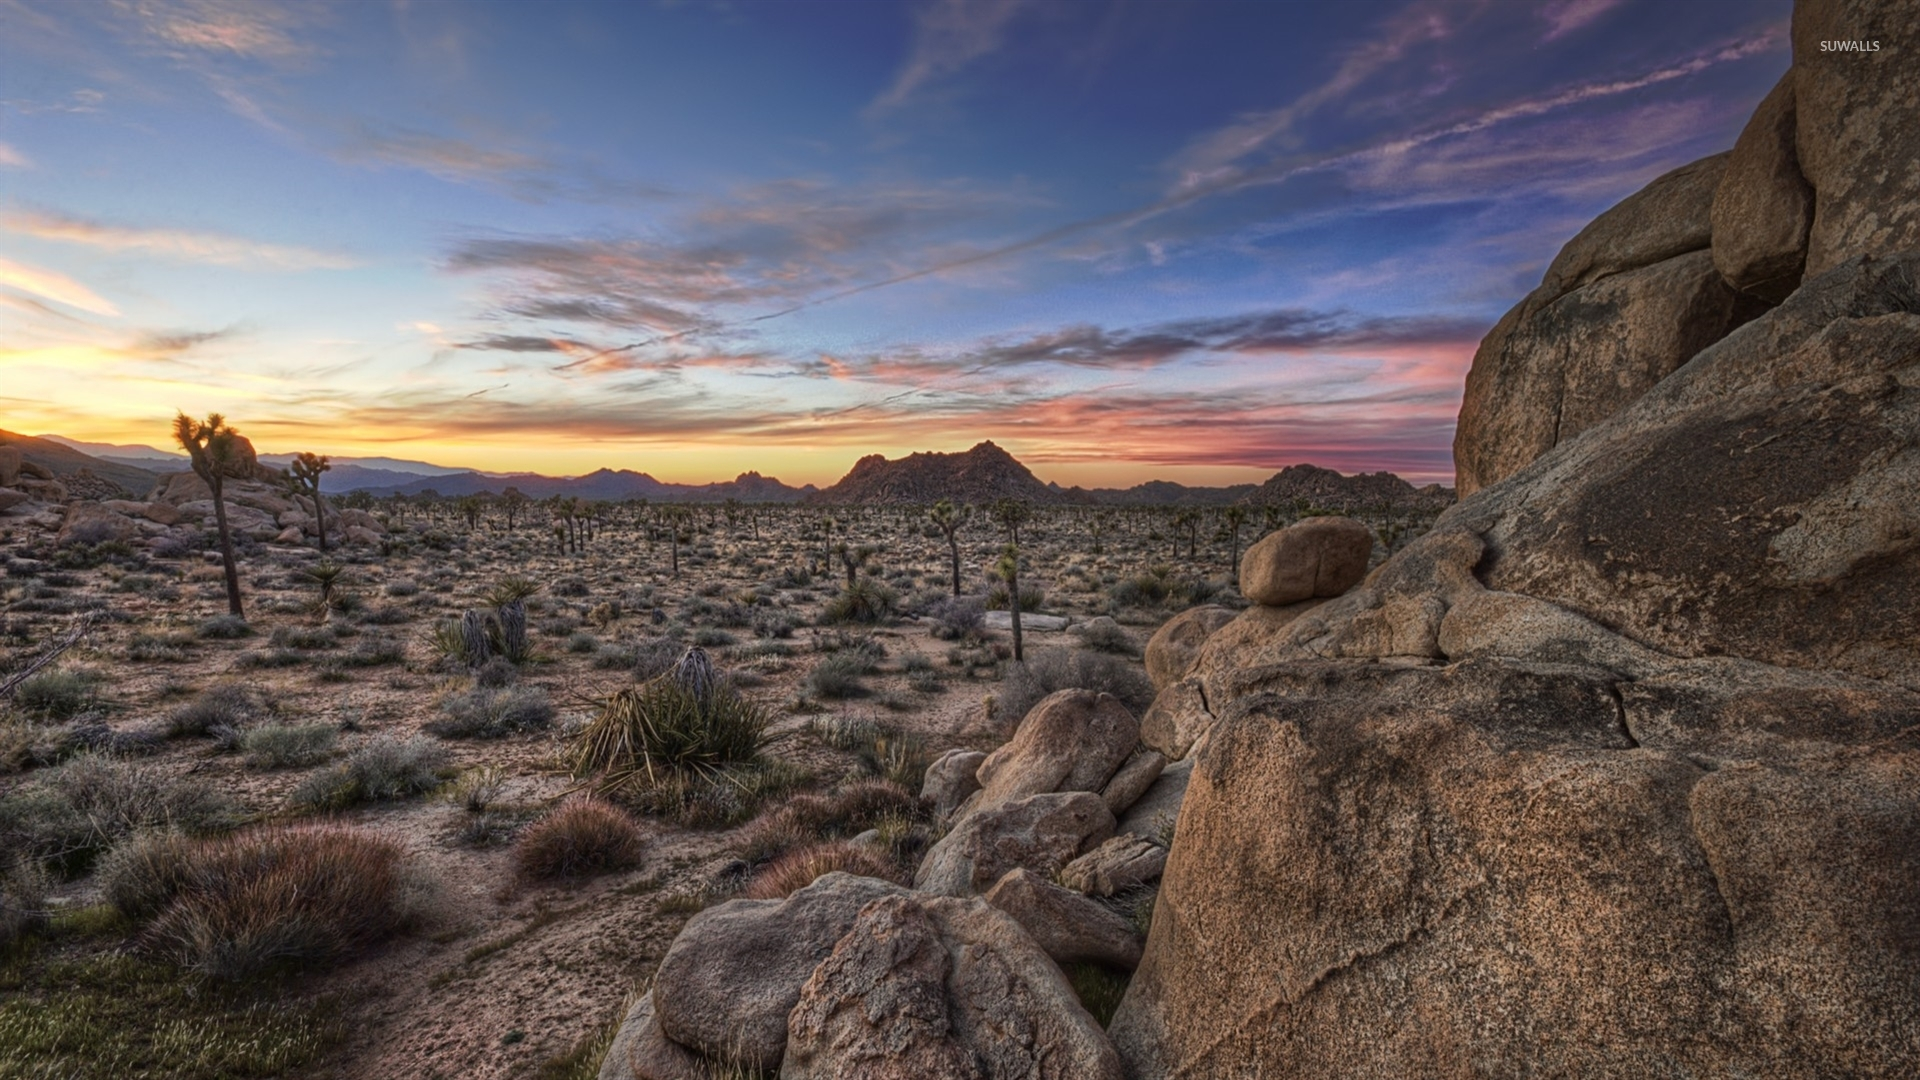 joshua tree national park [7] wallpaper - nature wallpapers - #45082